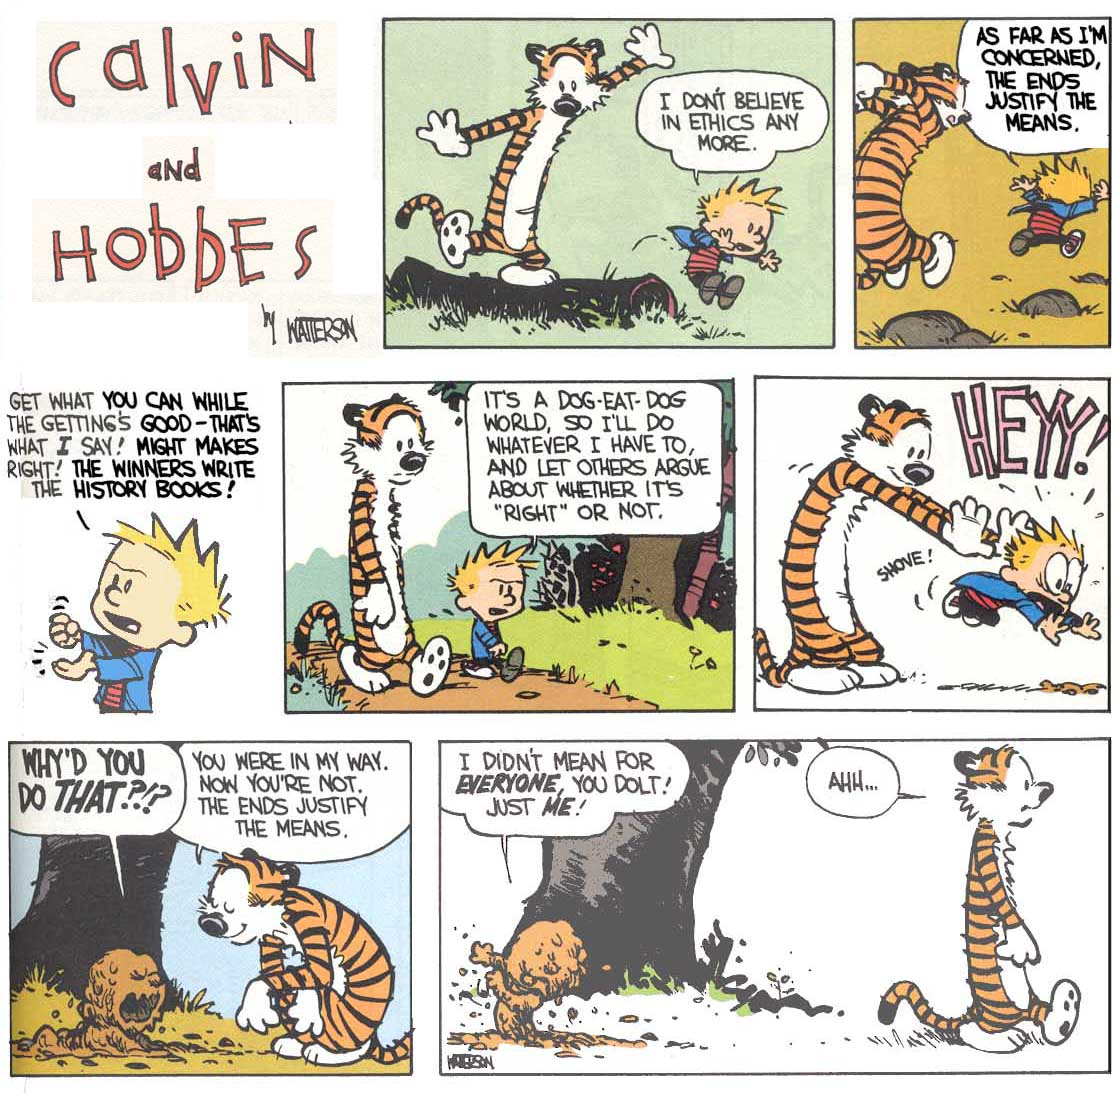 utilitarianism in brave new world a critique lacking material calvin and hobbes on ethics by bill watterson